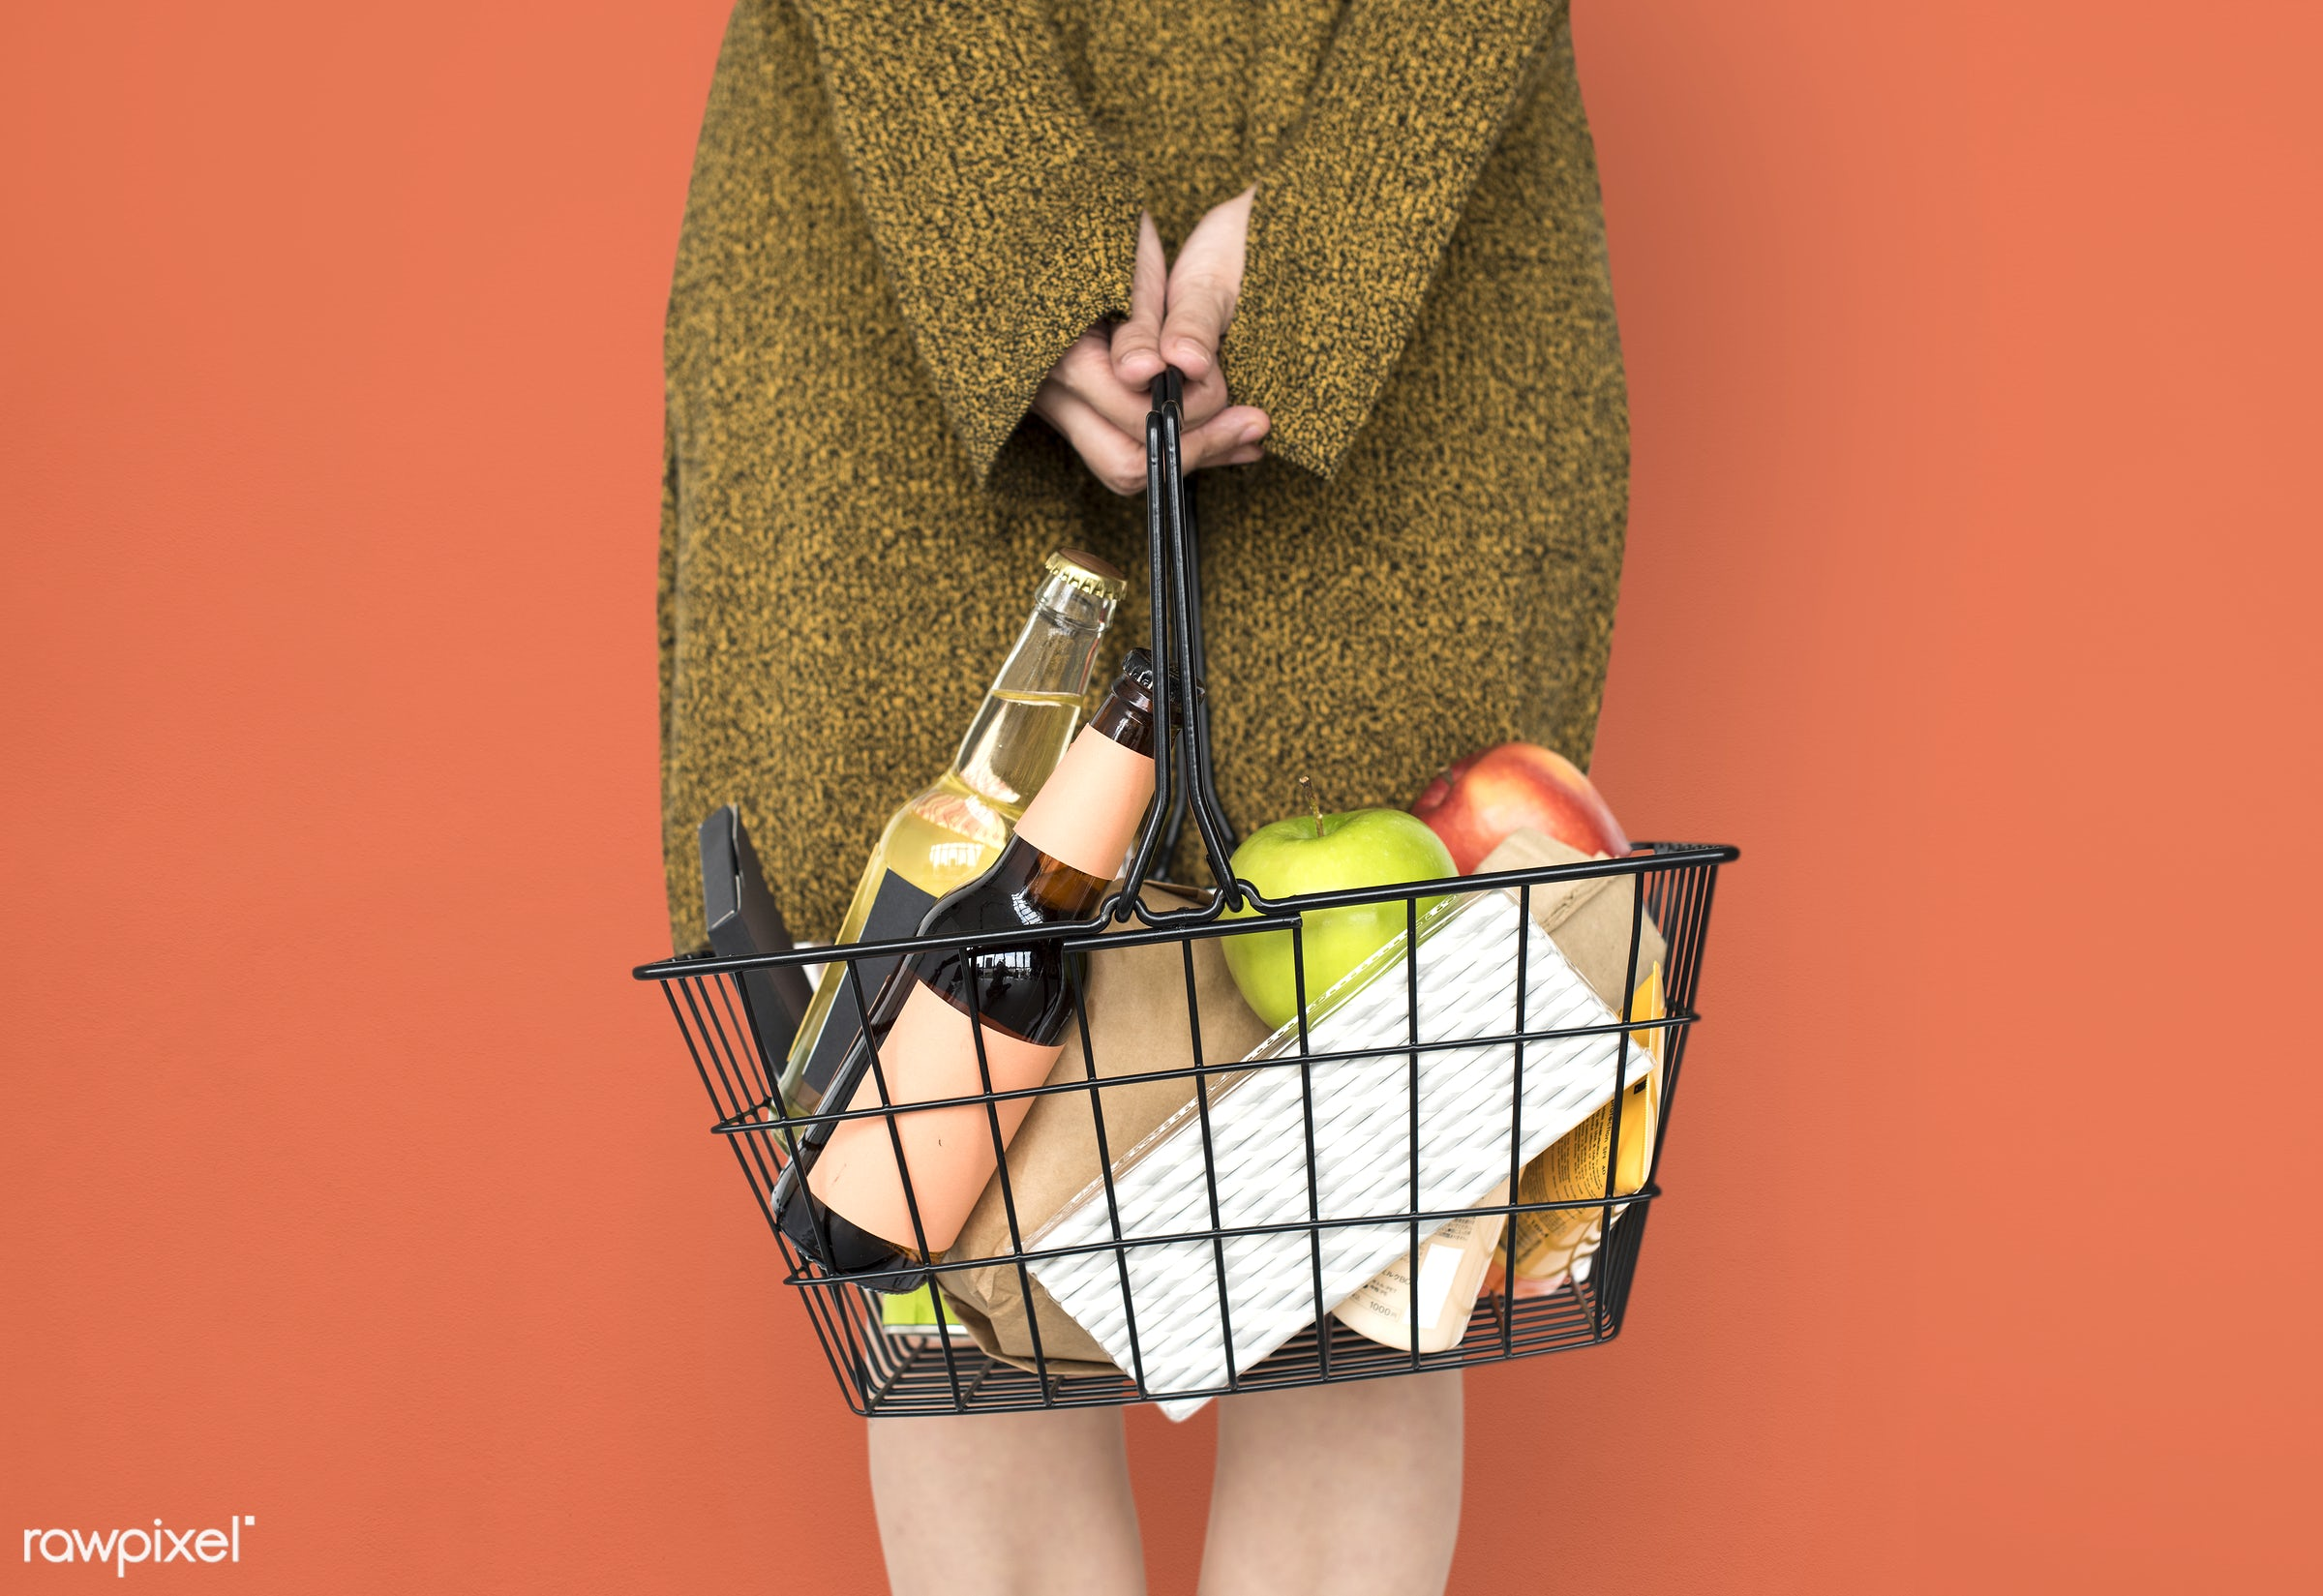 grocery, studio, person, goods, drinks, people, girl, carrying, solo, woman, casual, wine, orange, isolated, fruit,...